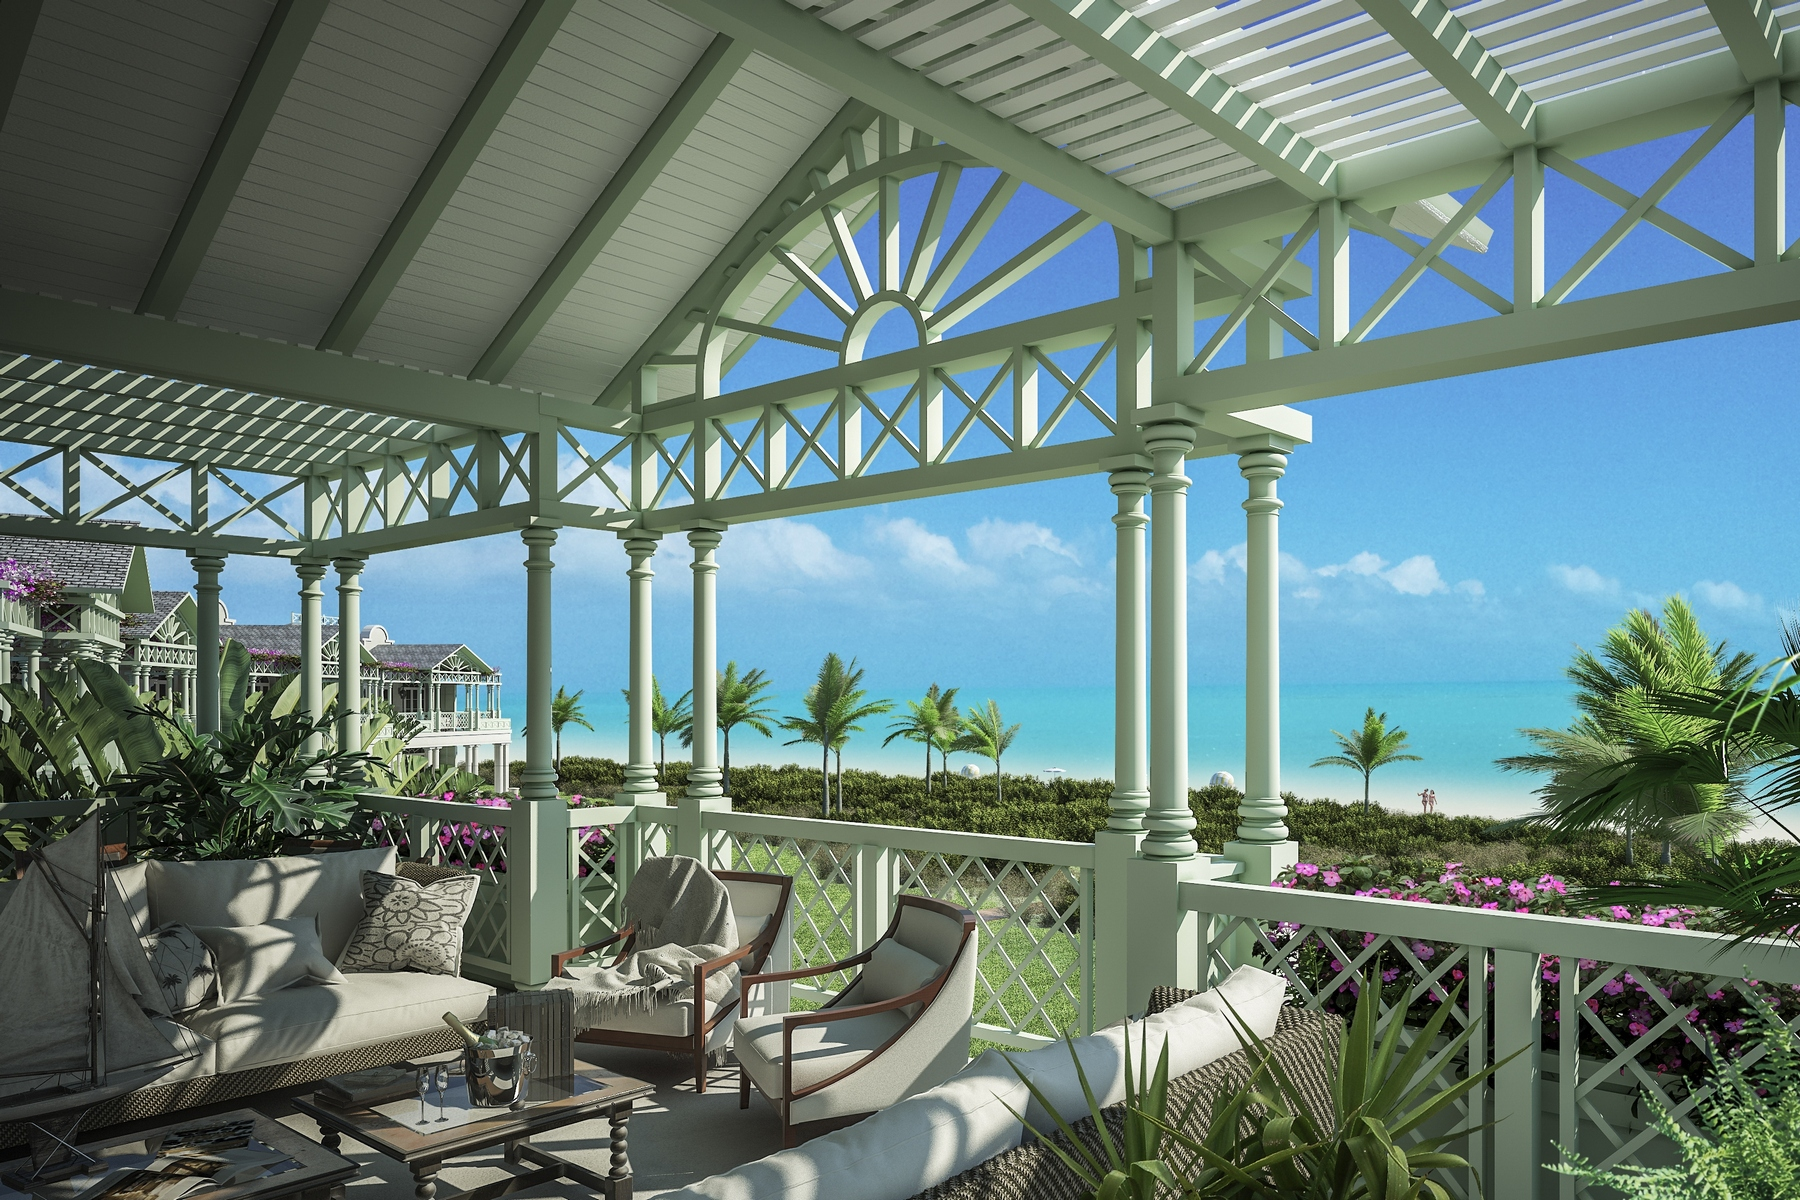 Casa Unifamiliar por un Venta en The Shore Club ~ Villa 5 The Shore Club, Long Bay, Providenciales Islas Turcas Y Caicos